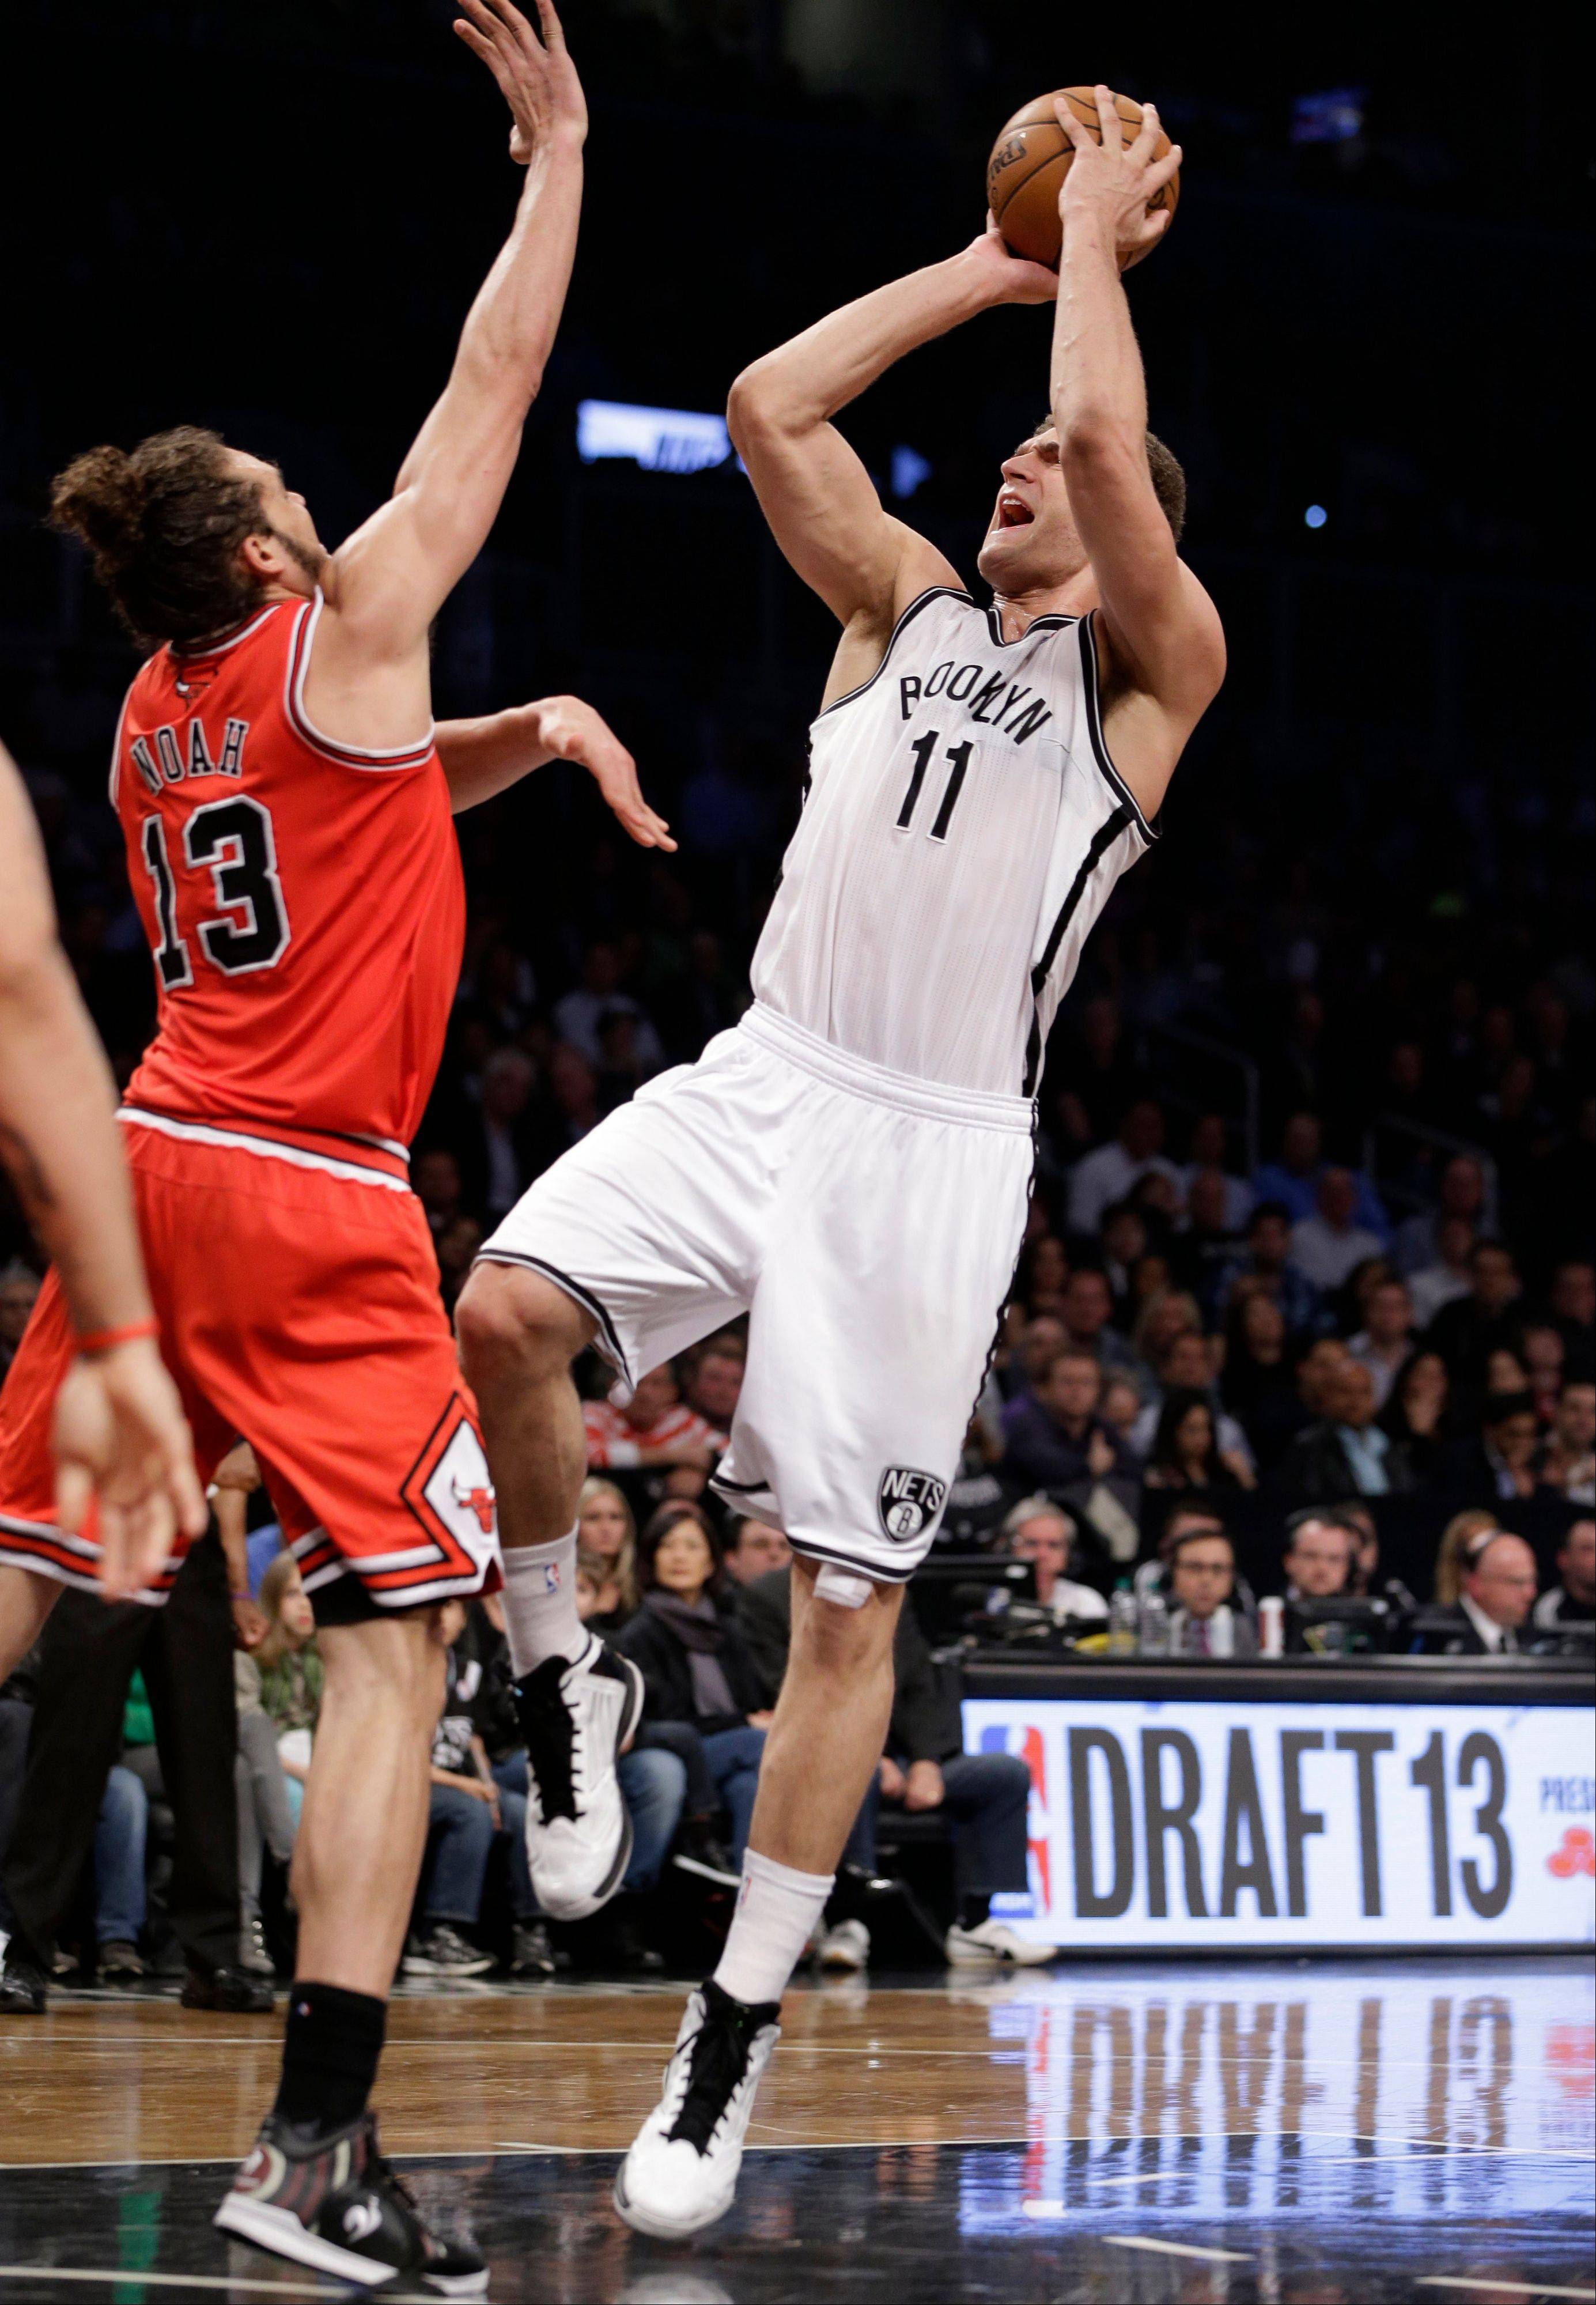 Brooklyn Nets center Brook Lopez (11) shoots over Chicago Bulls center Joakim Noah (13) in the first half of Game 5 of their first-round NBA basketball playoff series, Monday, April 29, 2013, in New York.